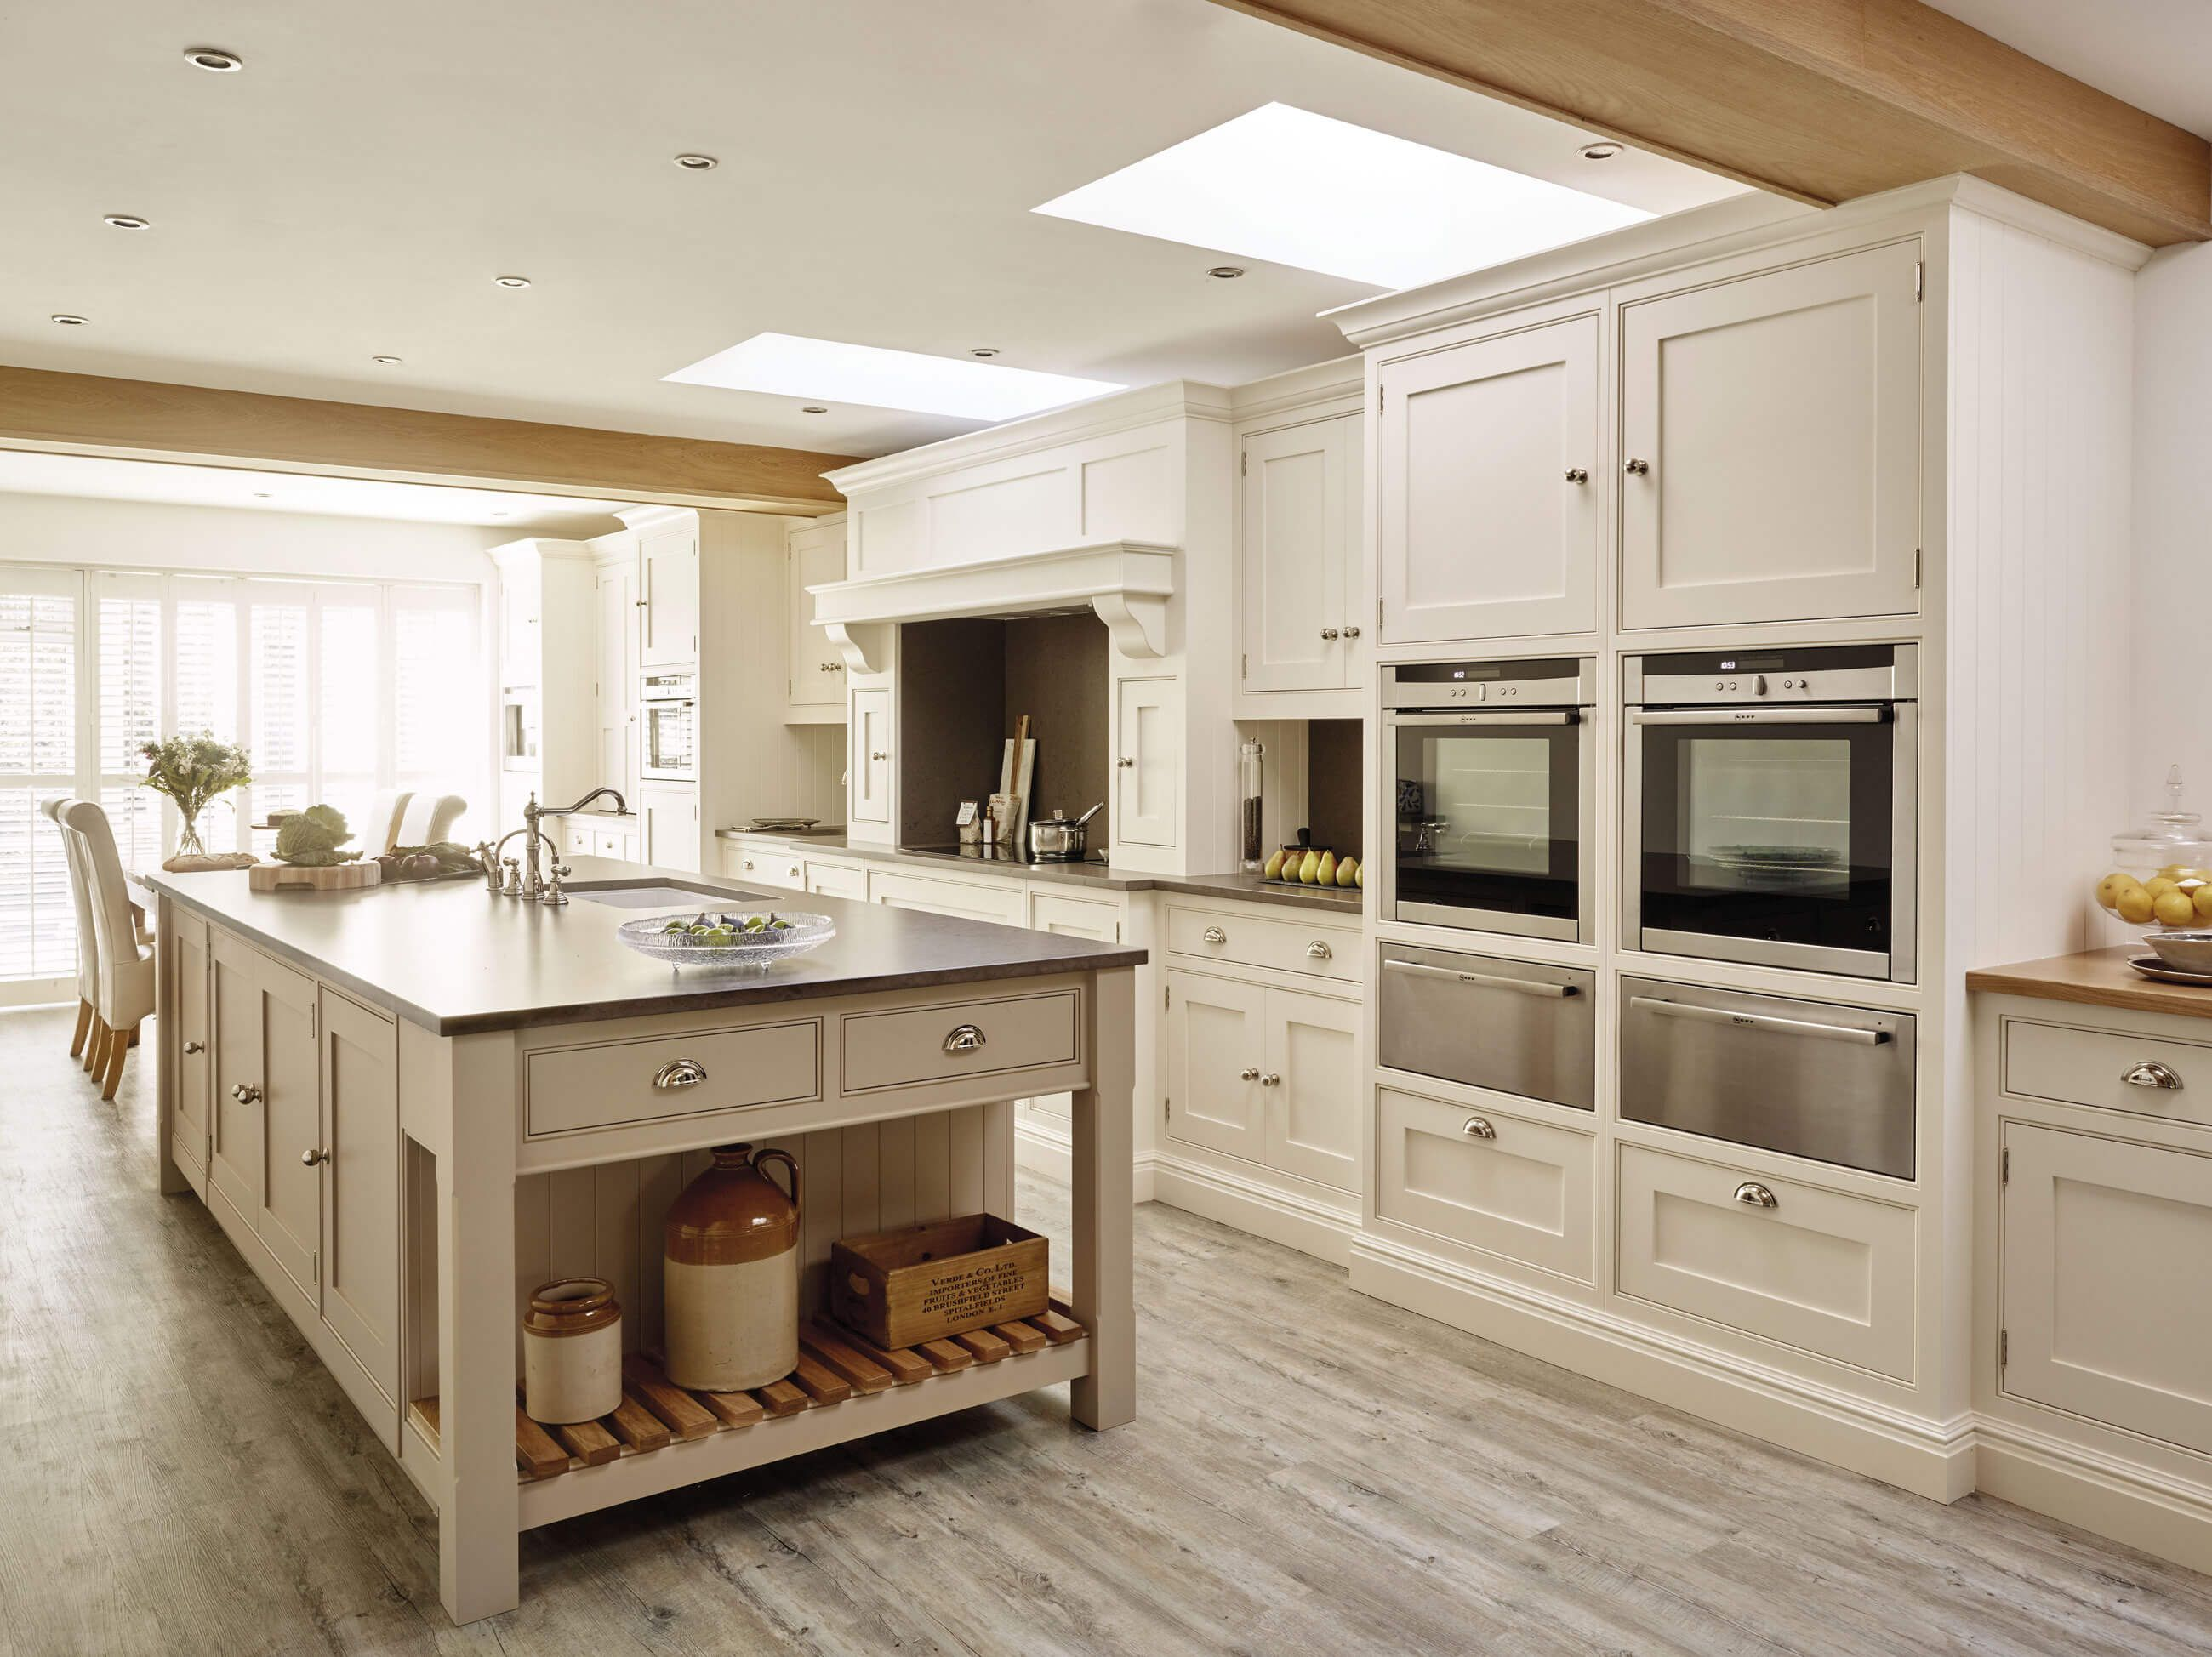 traditional country kitchen design Country Kitchen Design in 2019 | kitchen | Country kitchen